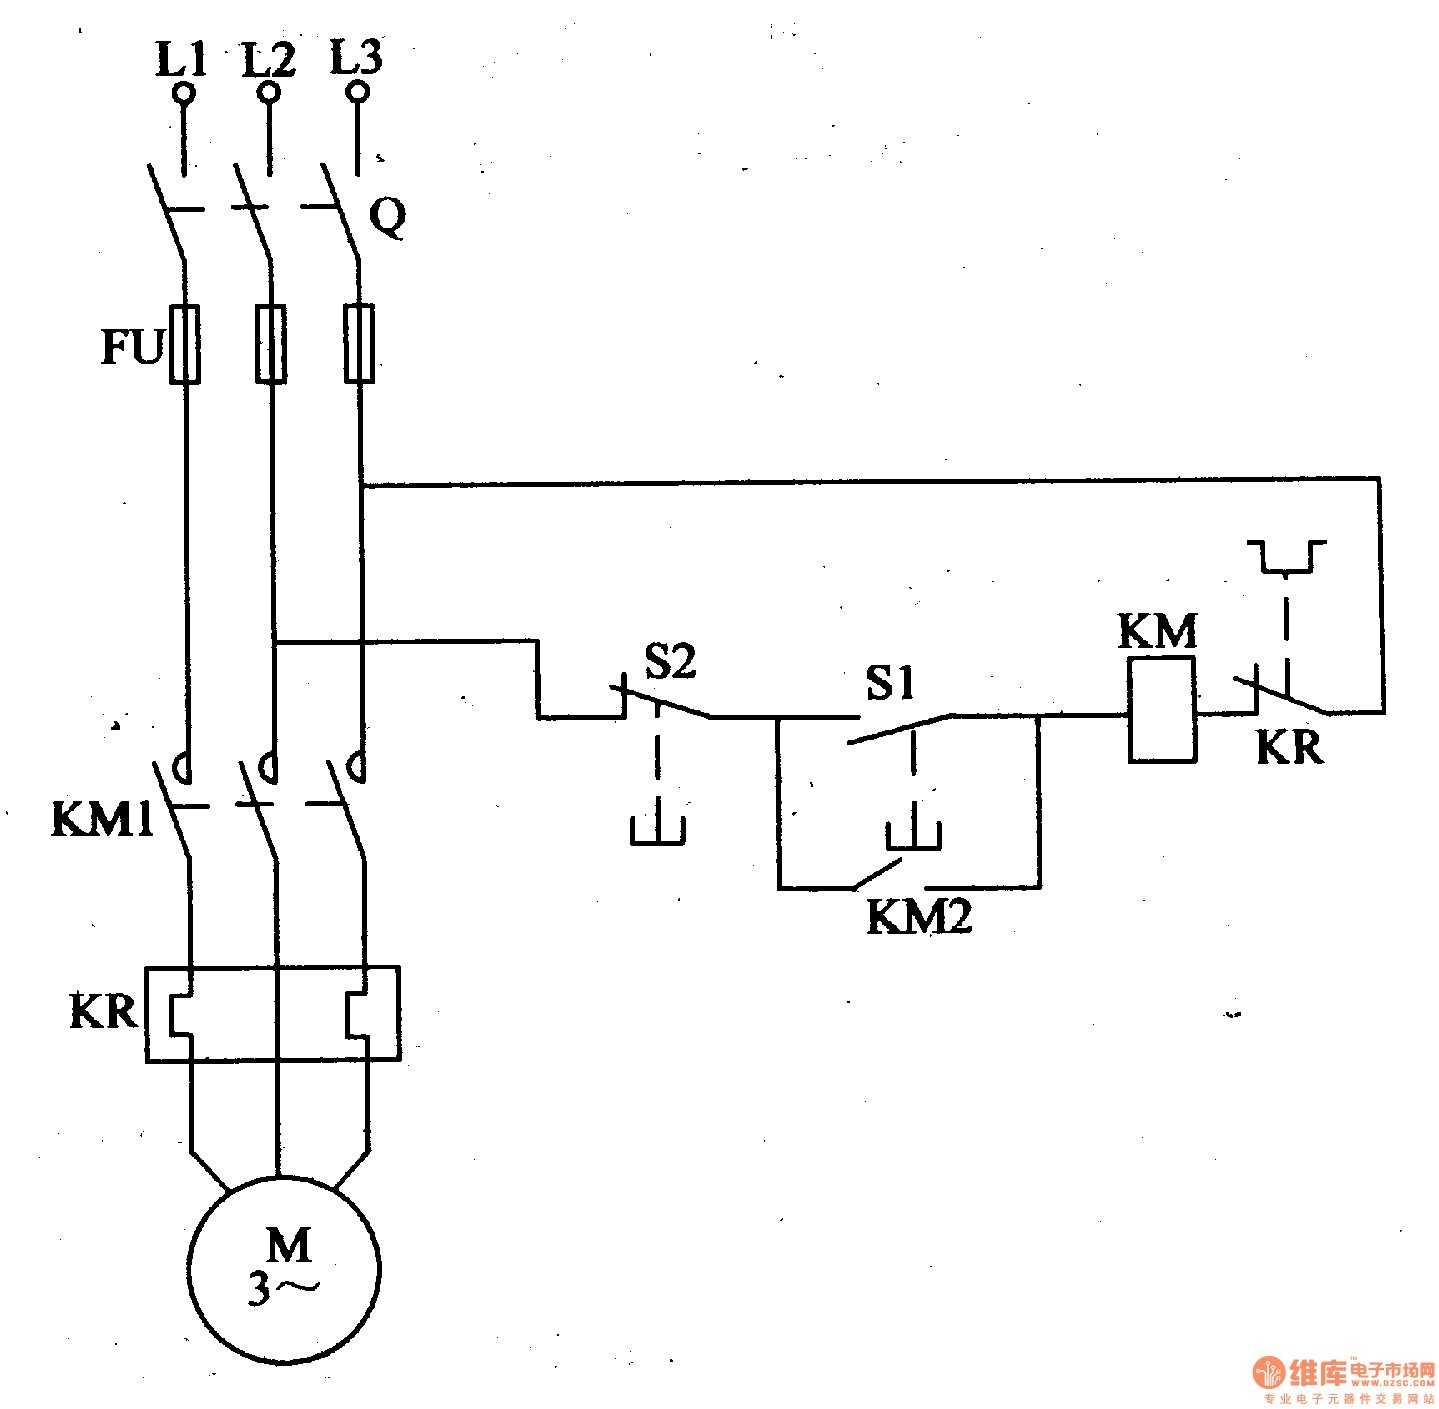 [MOBILIA] Motor Starter Diagram Start Stop 3 Wire Control